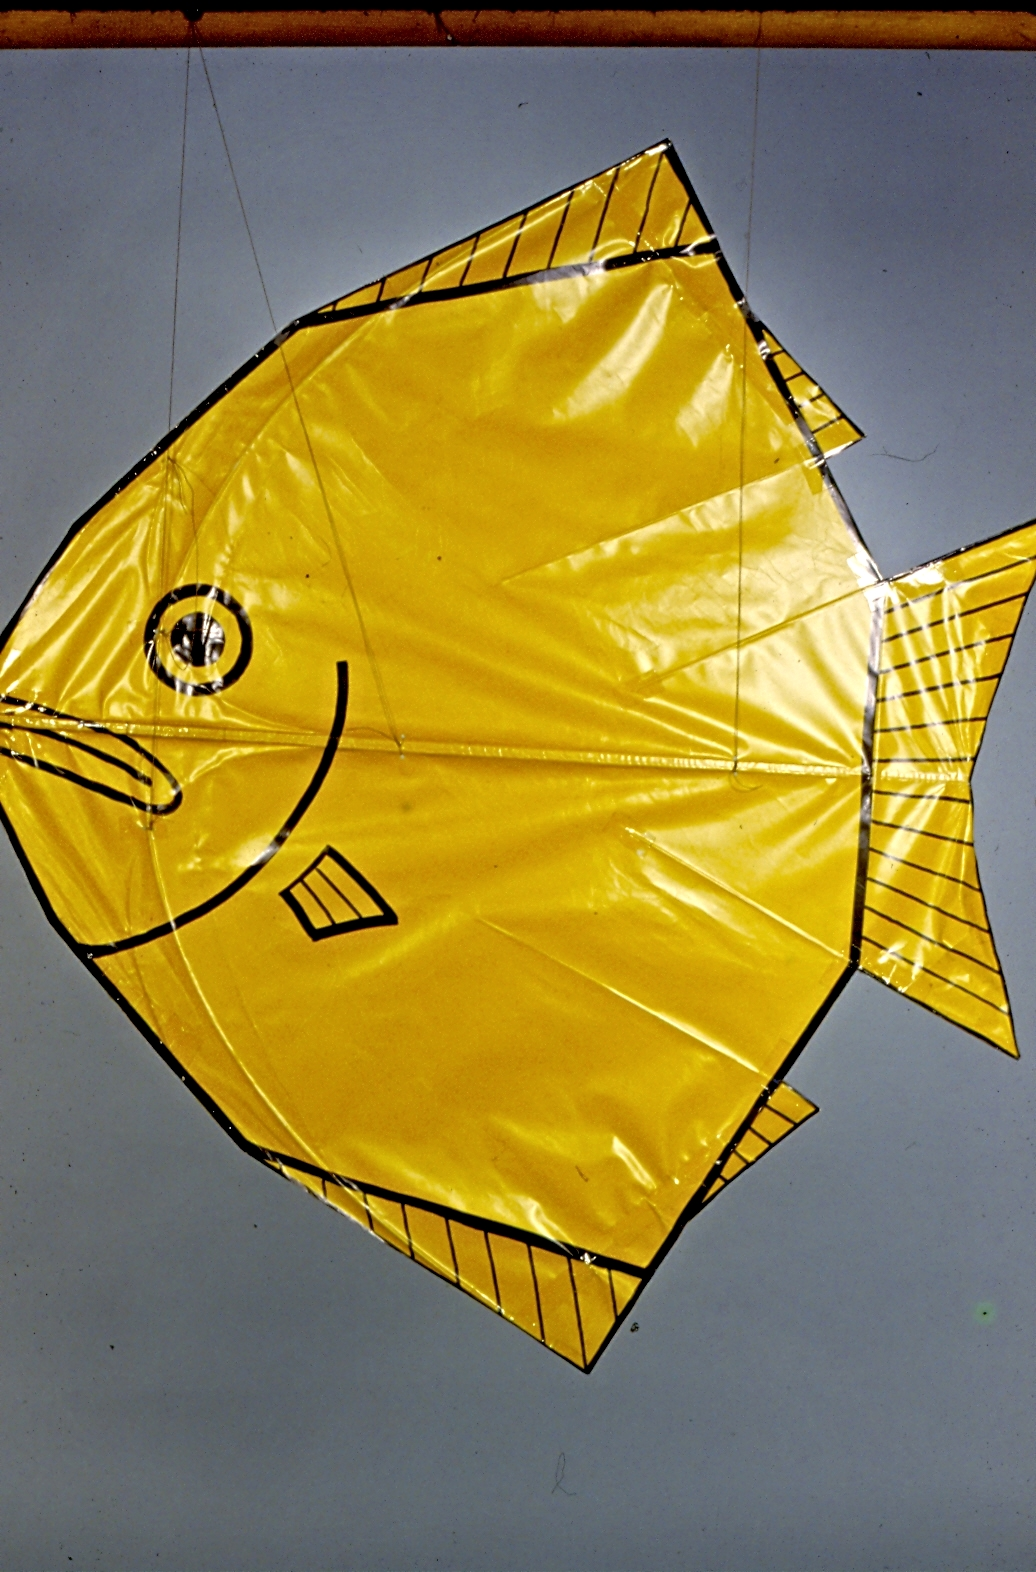 kiteJapanYellowFish.jpg